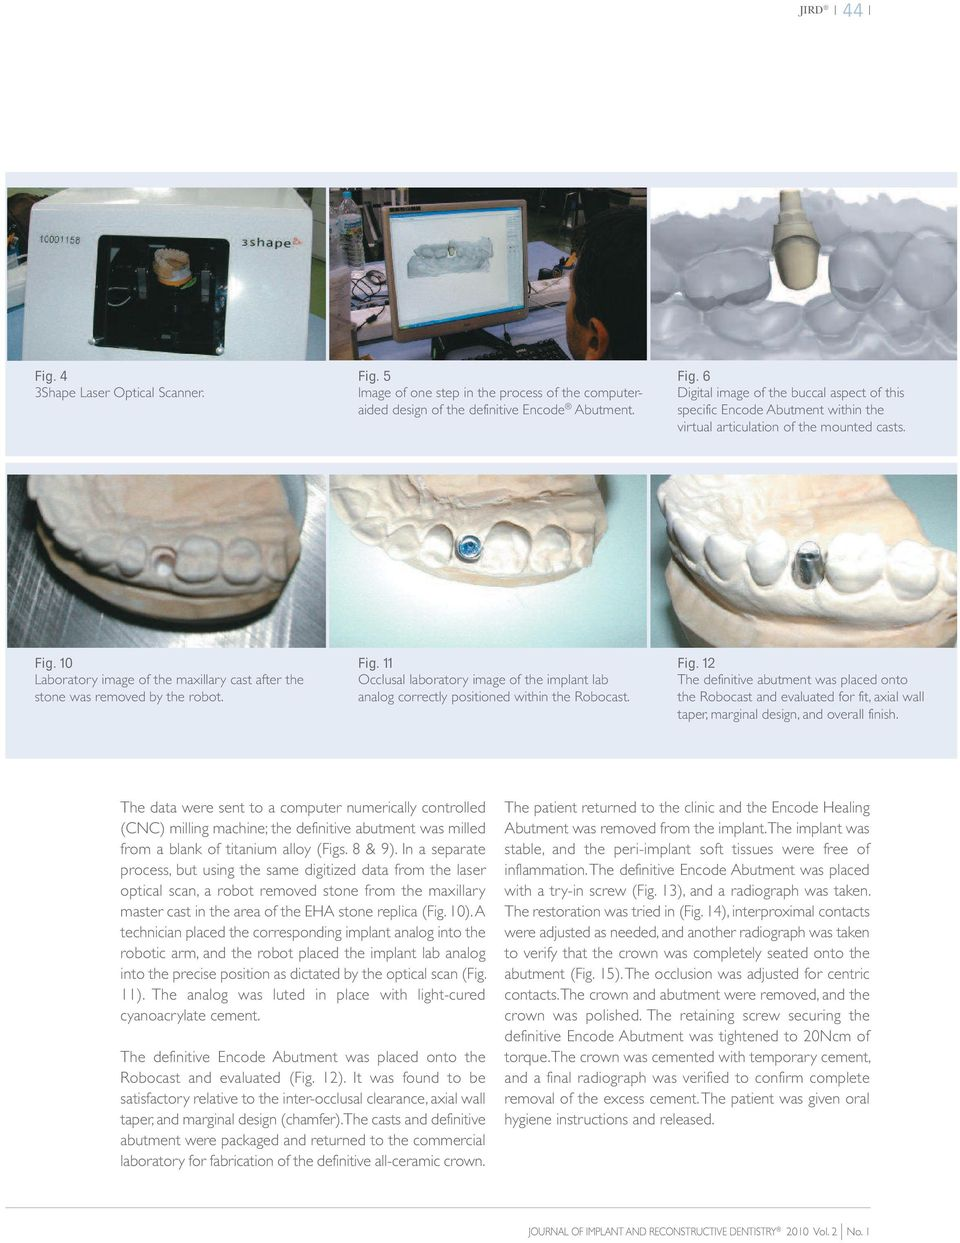 11 Occlusal laboratory image of the implant lab analog correctly positioned within the Robocast. Fig.